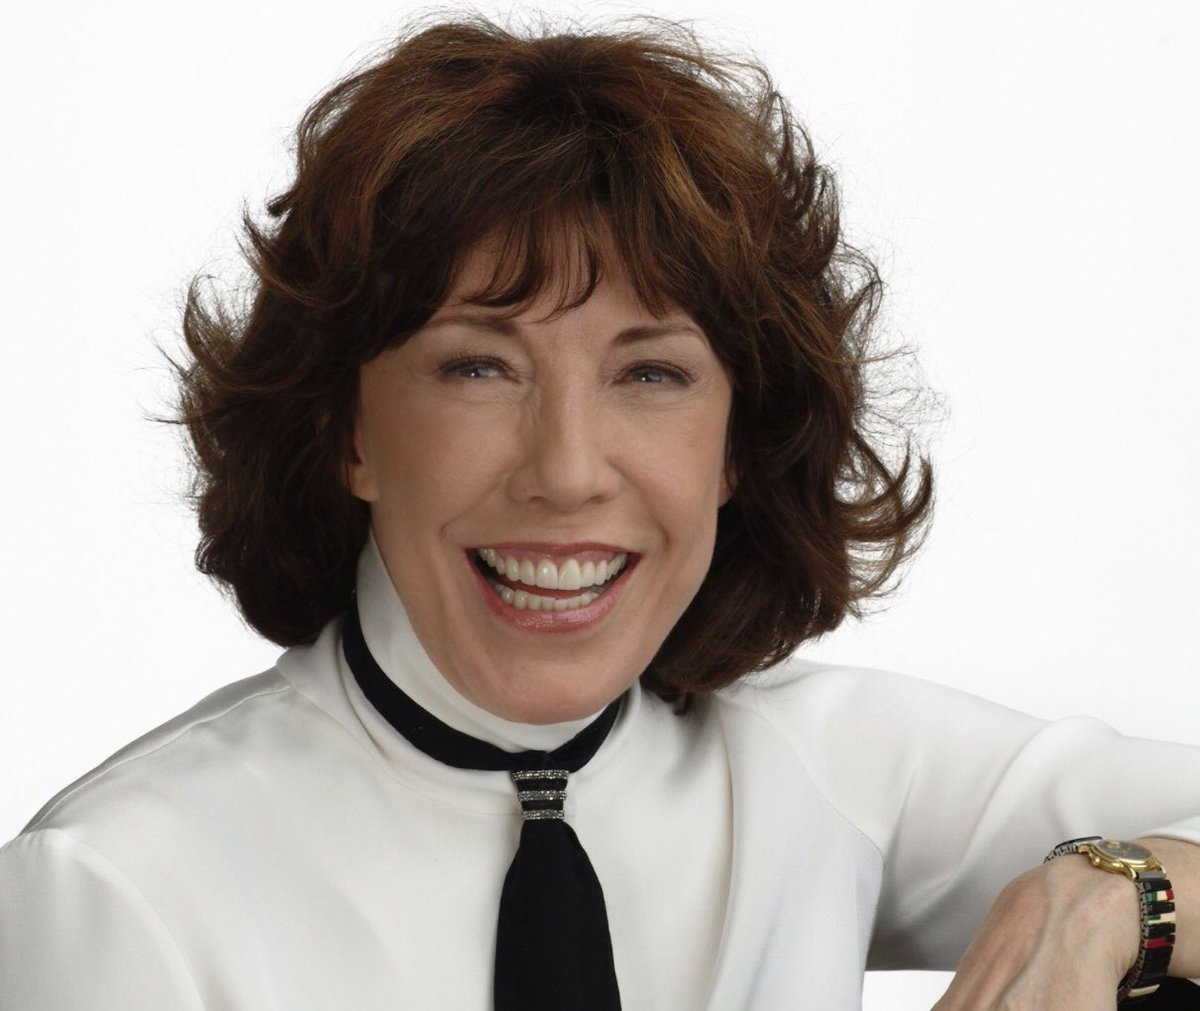 5 Days Left For a chance to win a meet & greet with Lily Tomlin on August 8th in Jamestown! All proceeds will go to supporting the animals in need! Here's the link:  https://www.charitybuzz.com/catalog_items/meet-lily-tomlin-with-2-tickets-to-an-evening-of-1564402… #larescue #lilytomlin #supportnonprofits #support #auction #gooddeed #foracausepic.twitter.com/48ziXVwwUn